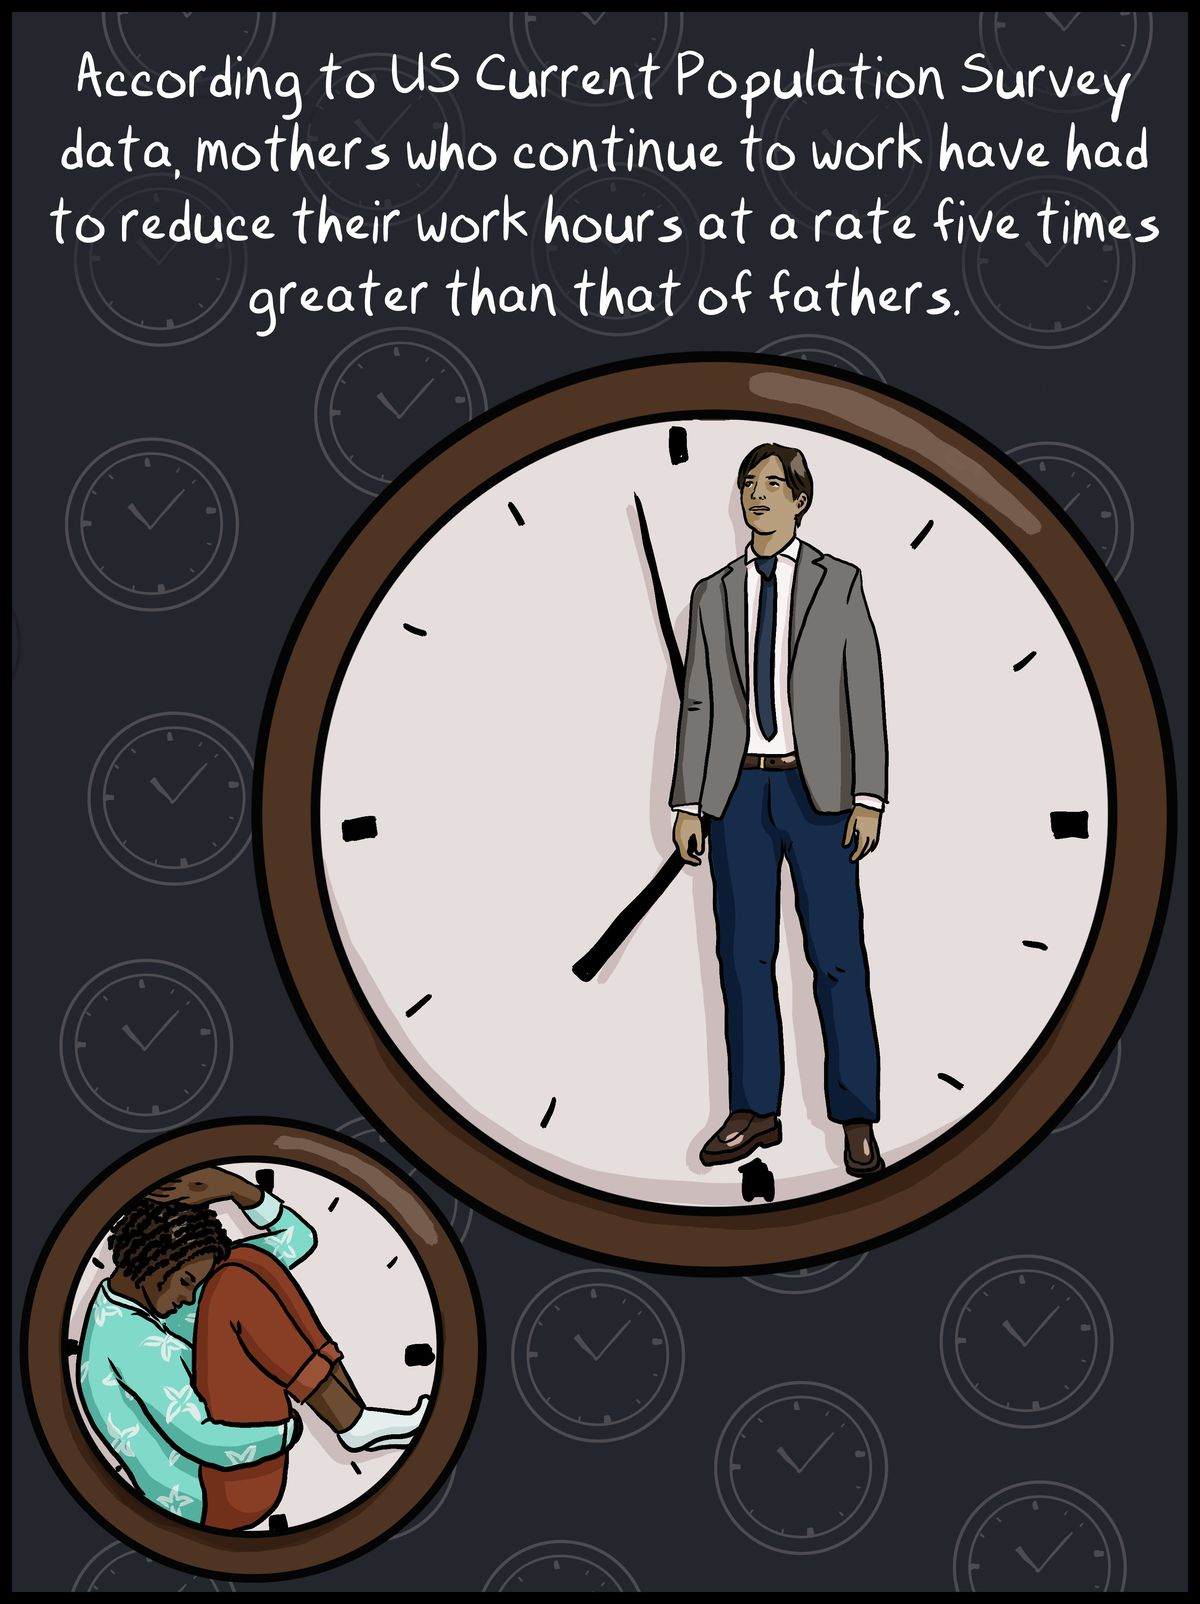 According to the US Current Population Survey data, mothers who continue to work have had to reduce their work hours at a rate five times greater than that of fathers.